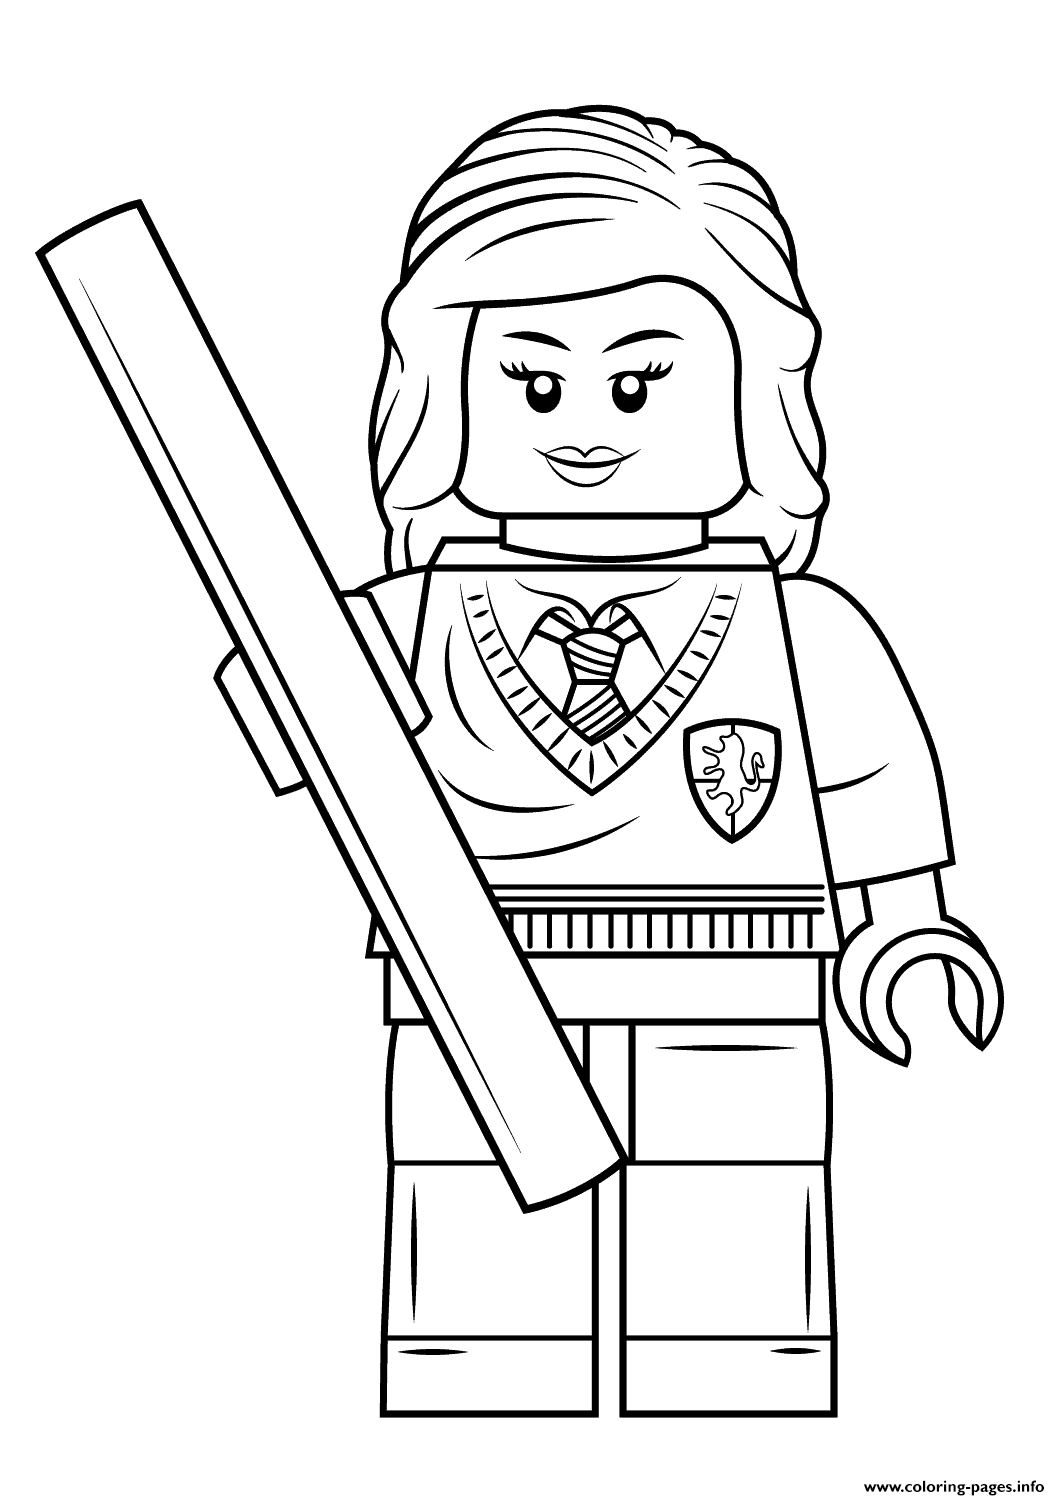 Print Lego Hermione Granger Harry Potter Coloring Pages Harry Potter Coloring Pages Lego Coloring Pages Harry Potter Colors